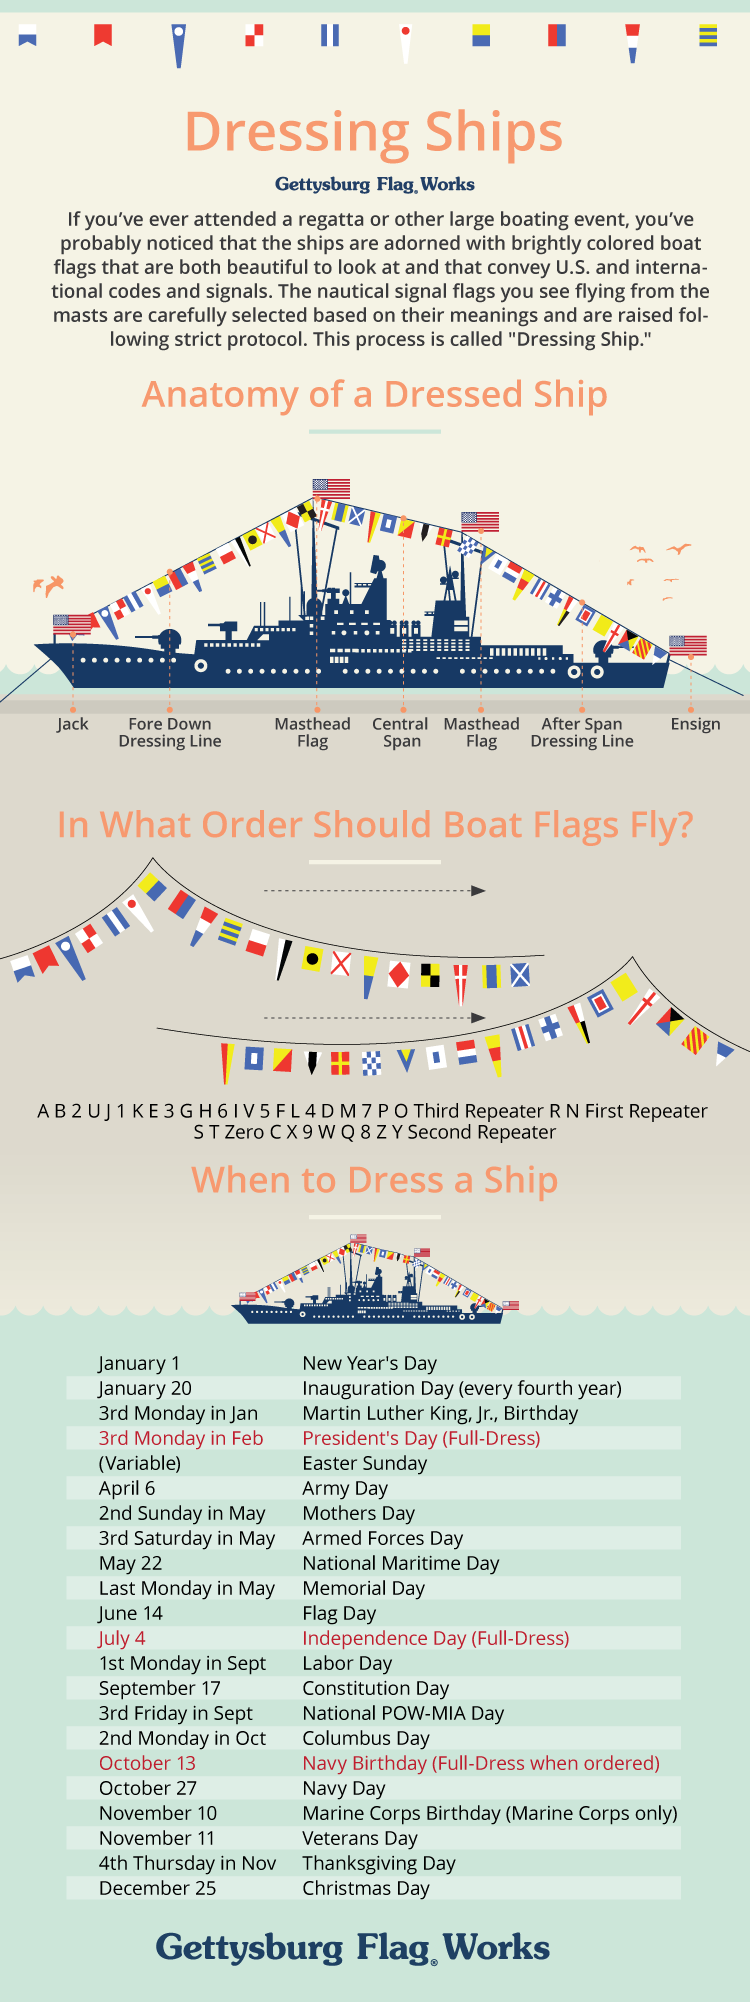 Dressing Ship with Nautical Flags | Visual.ly